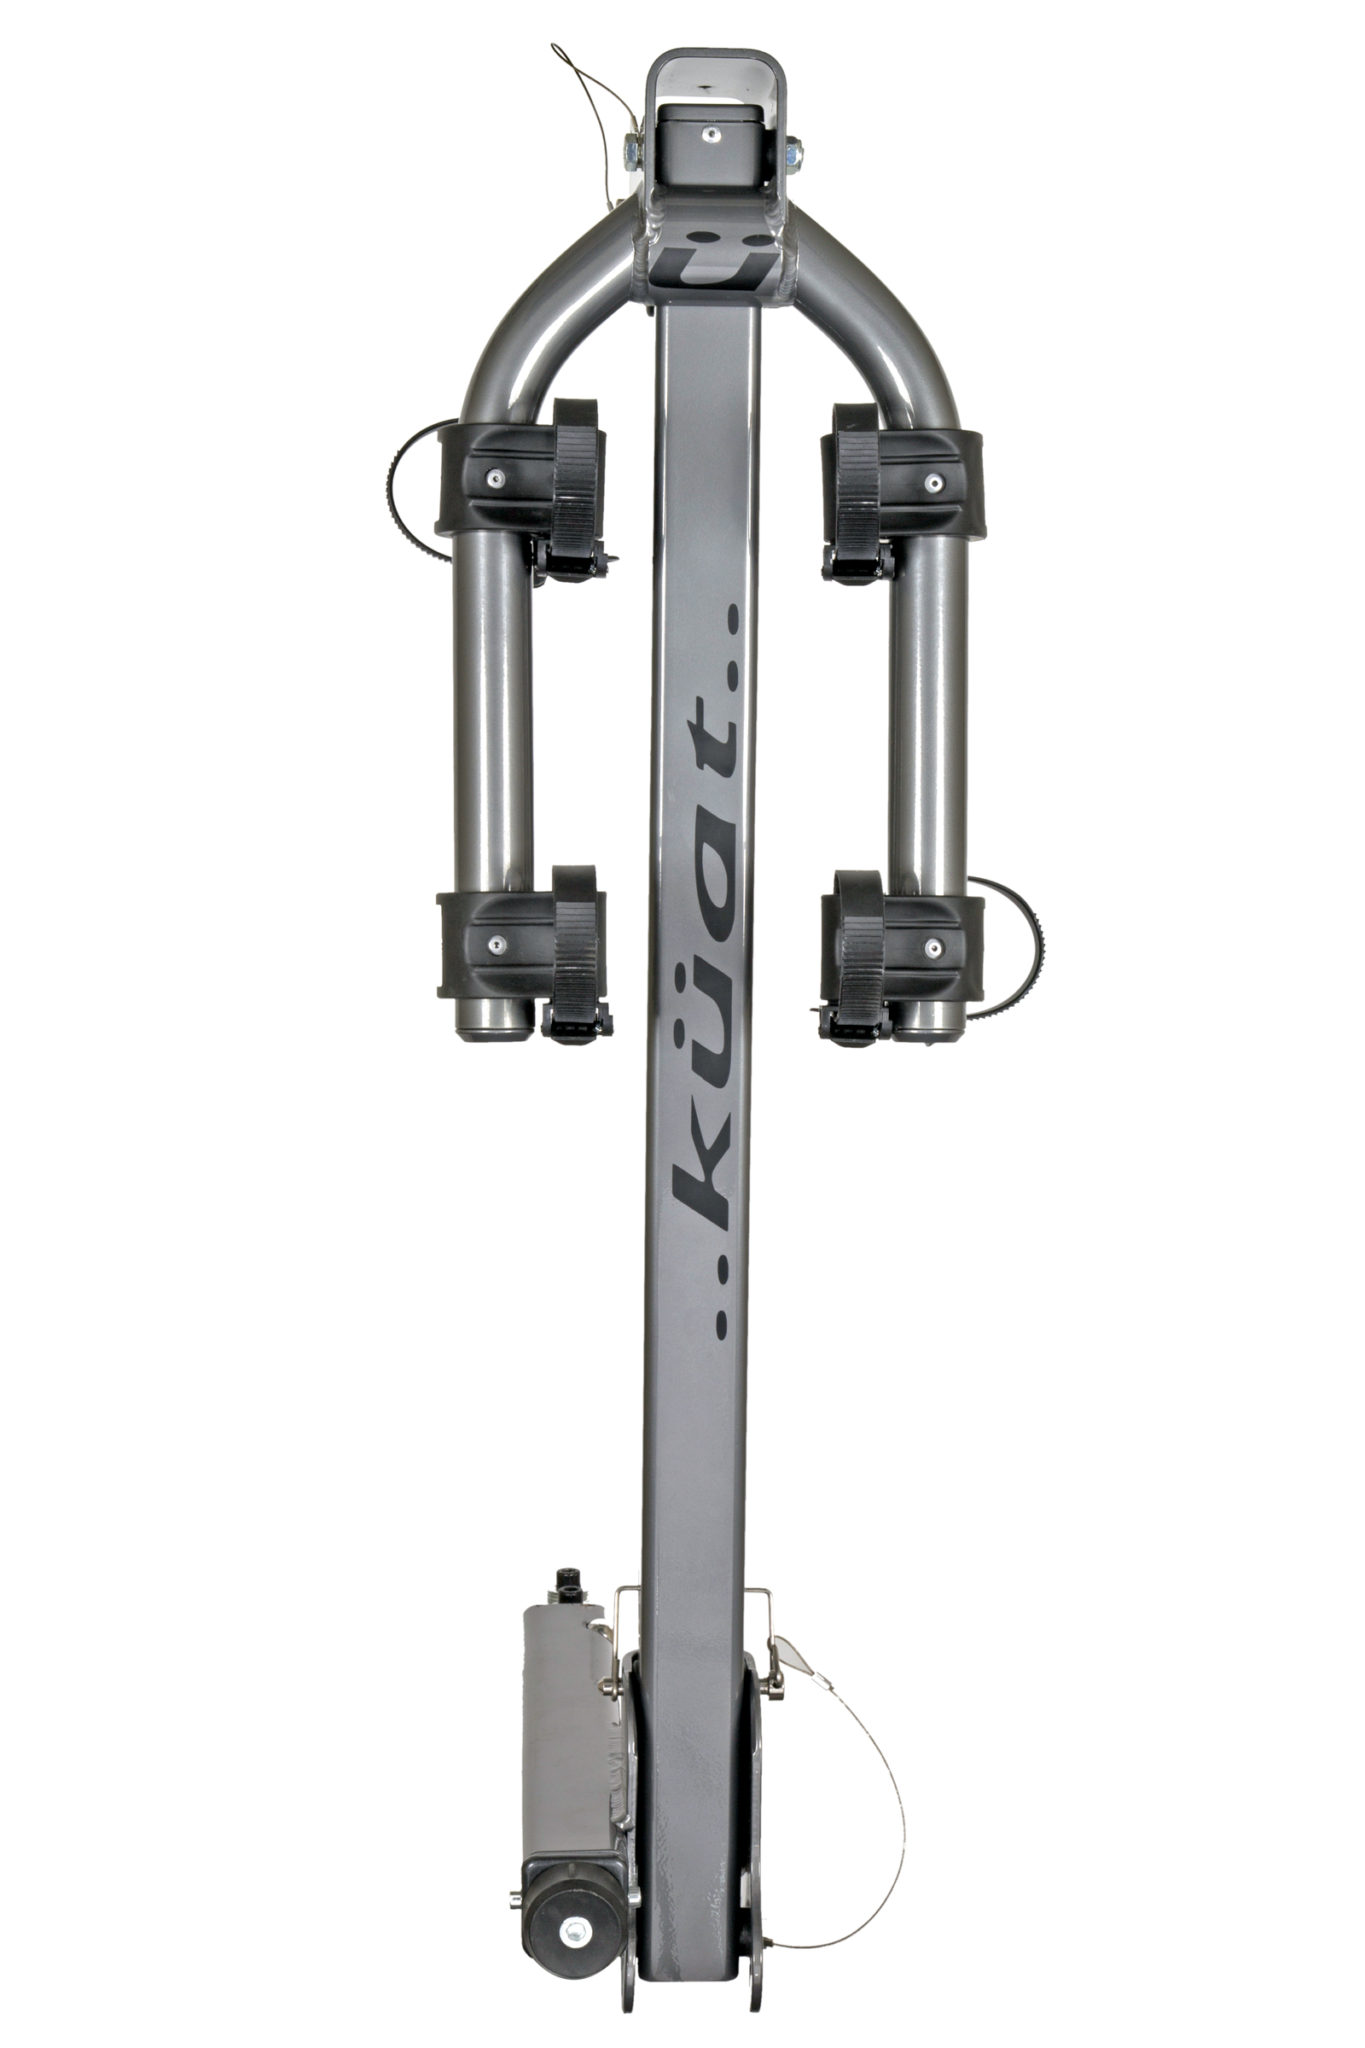 improves new at k rigidity com the bike mtbr rack nv beta and of finish kuat review all hitch accepts